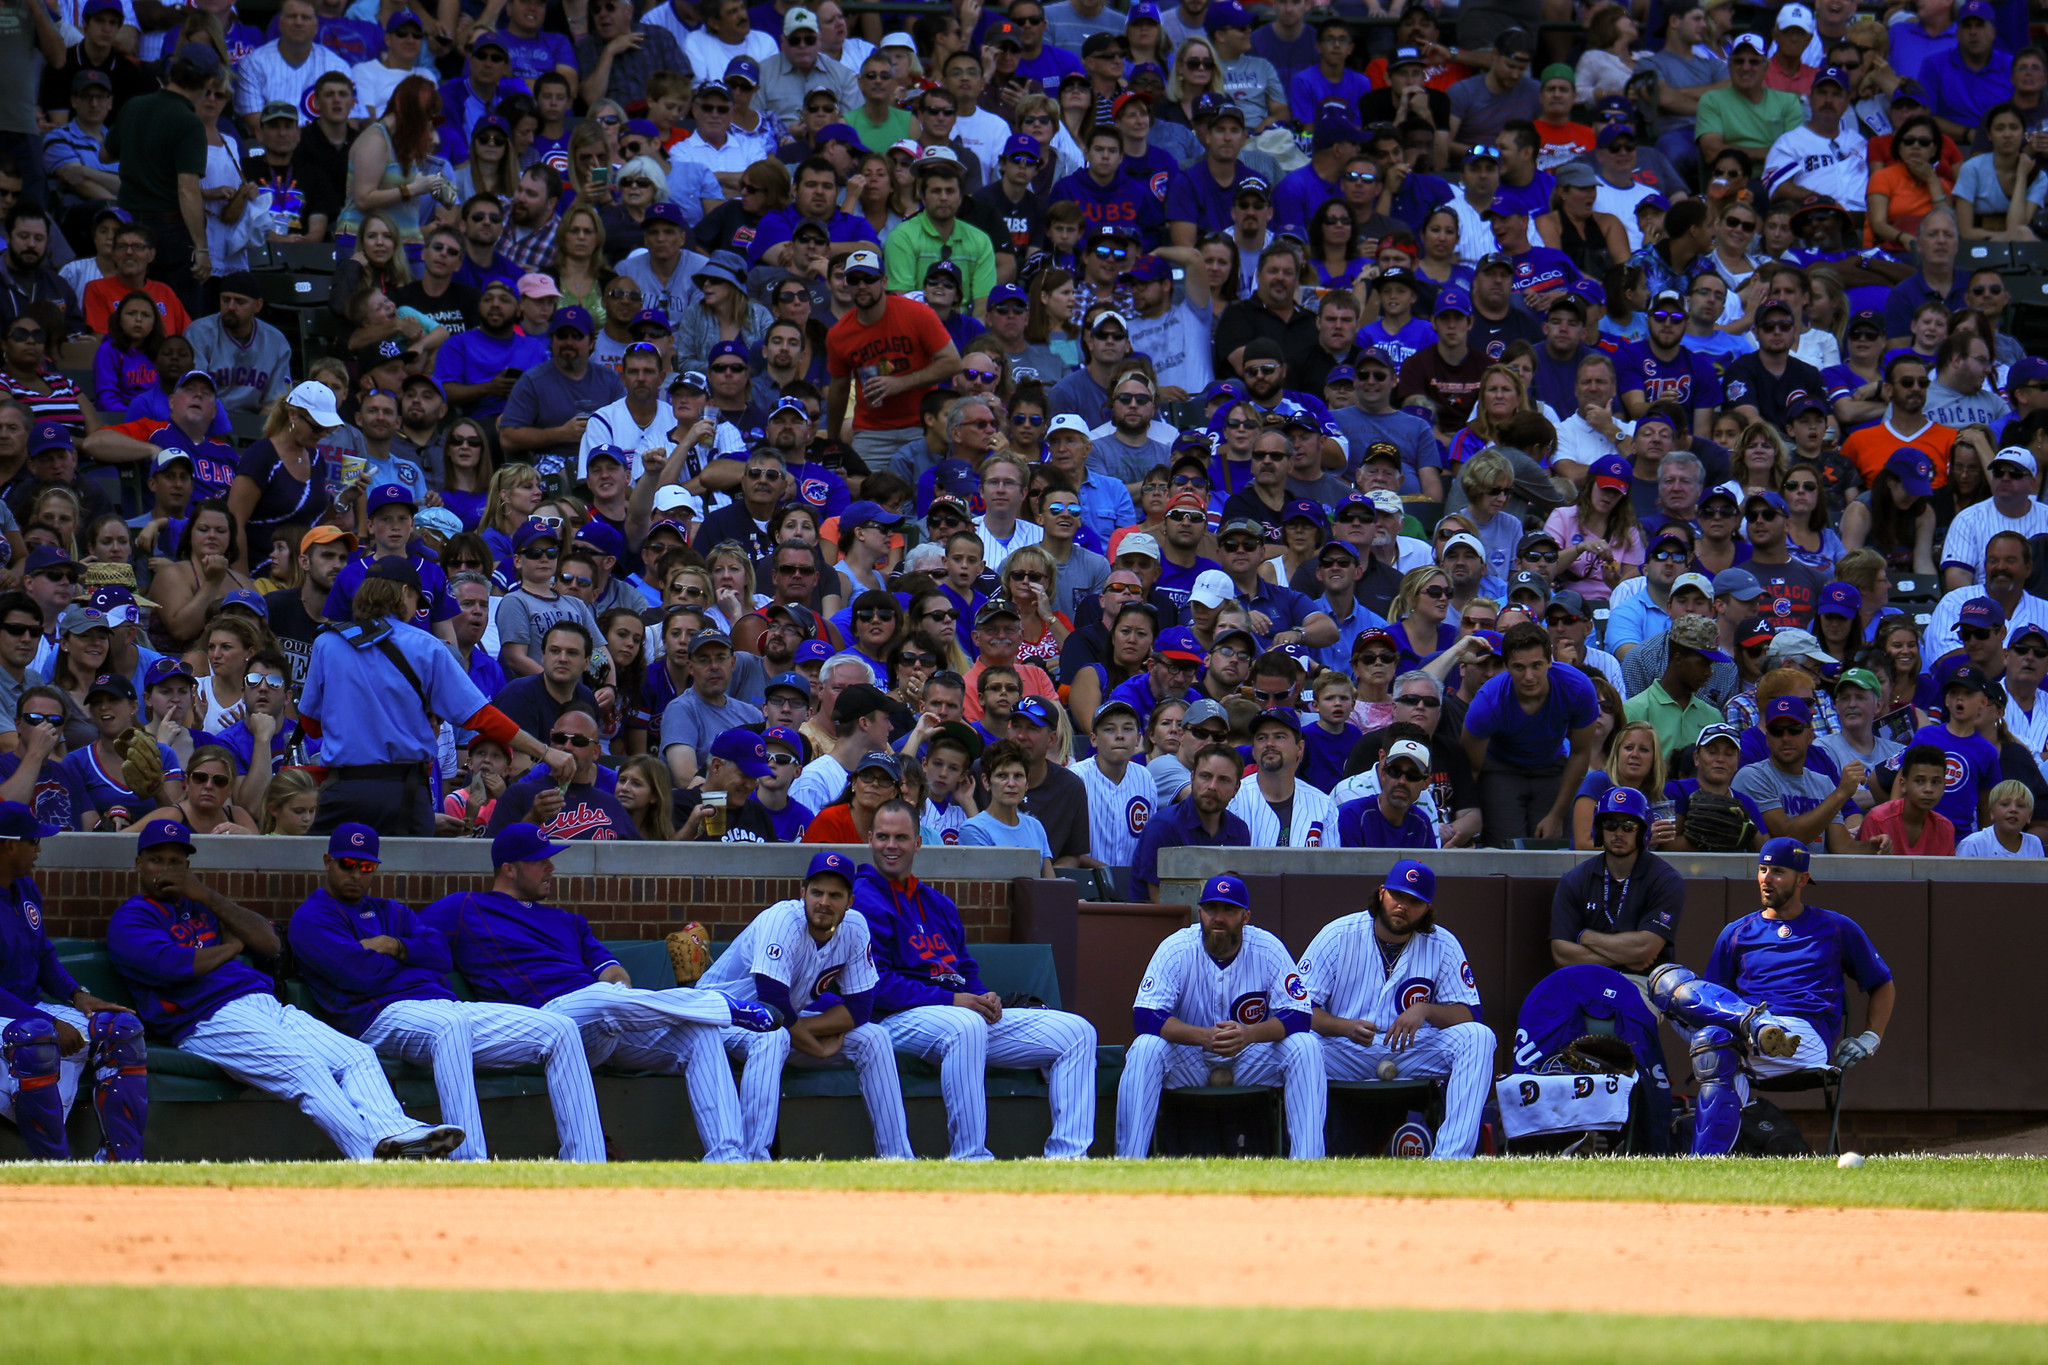 Bullpen chicken Cubs pitchers play strange game at